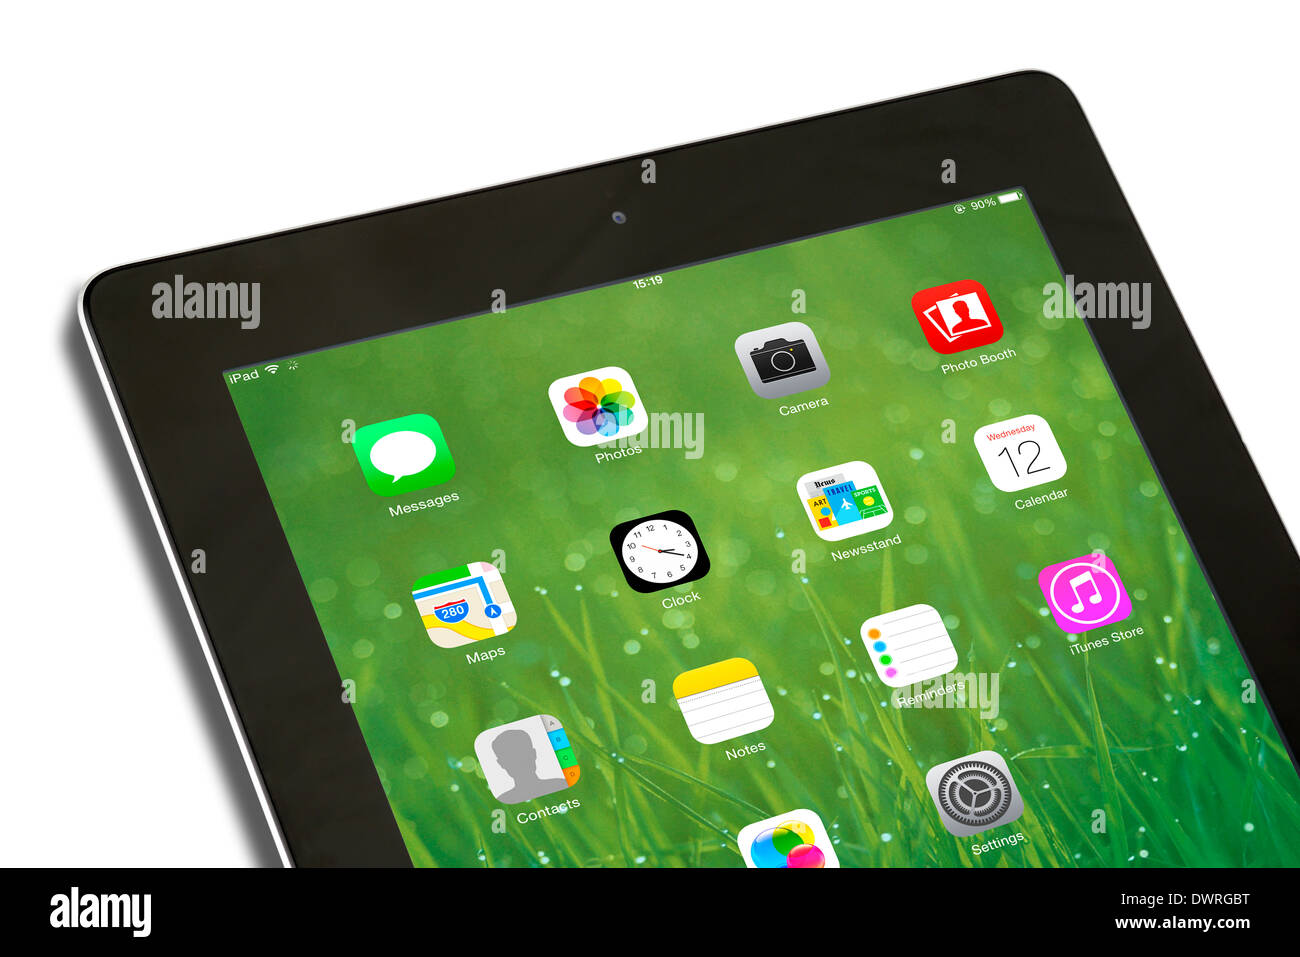 iOS 7.1 home screen on an Apple iPad 4th generation retina display tablet computer - Stock Image